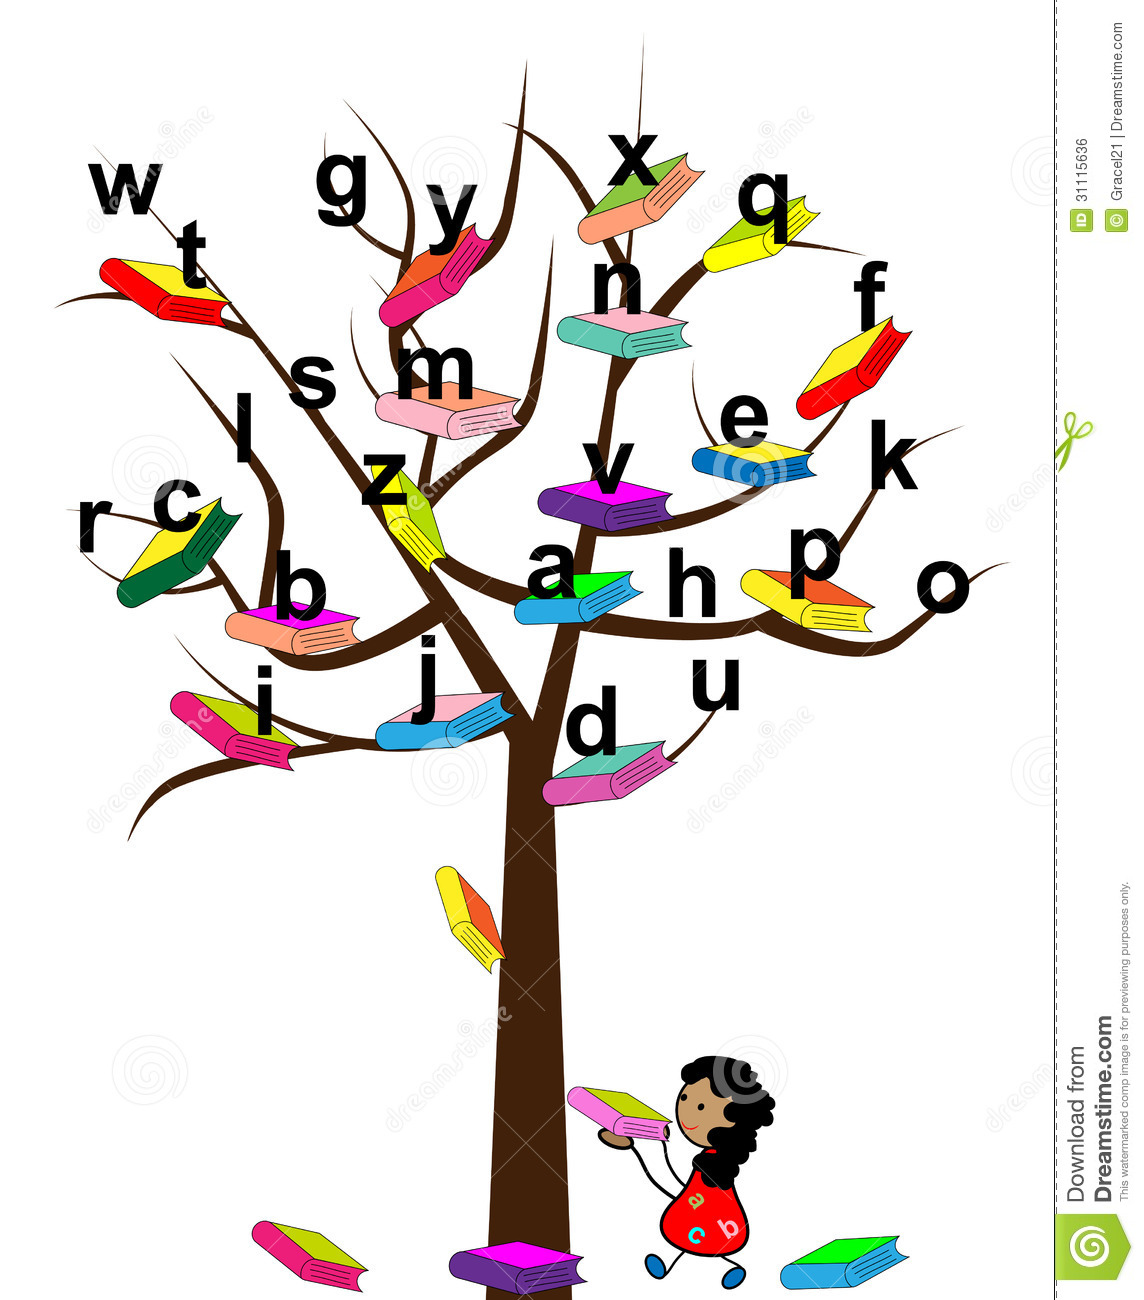 book tree clipart - photo #22